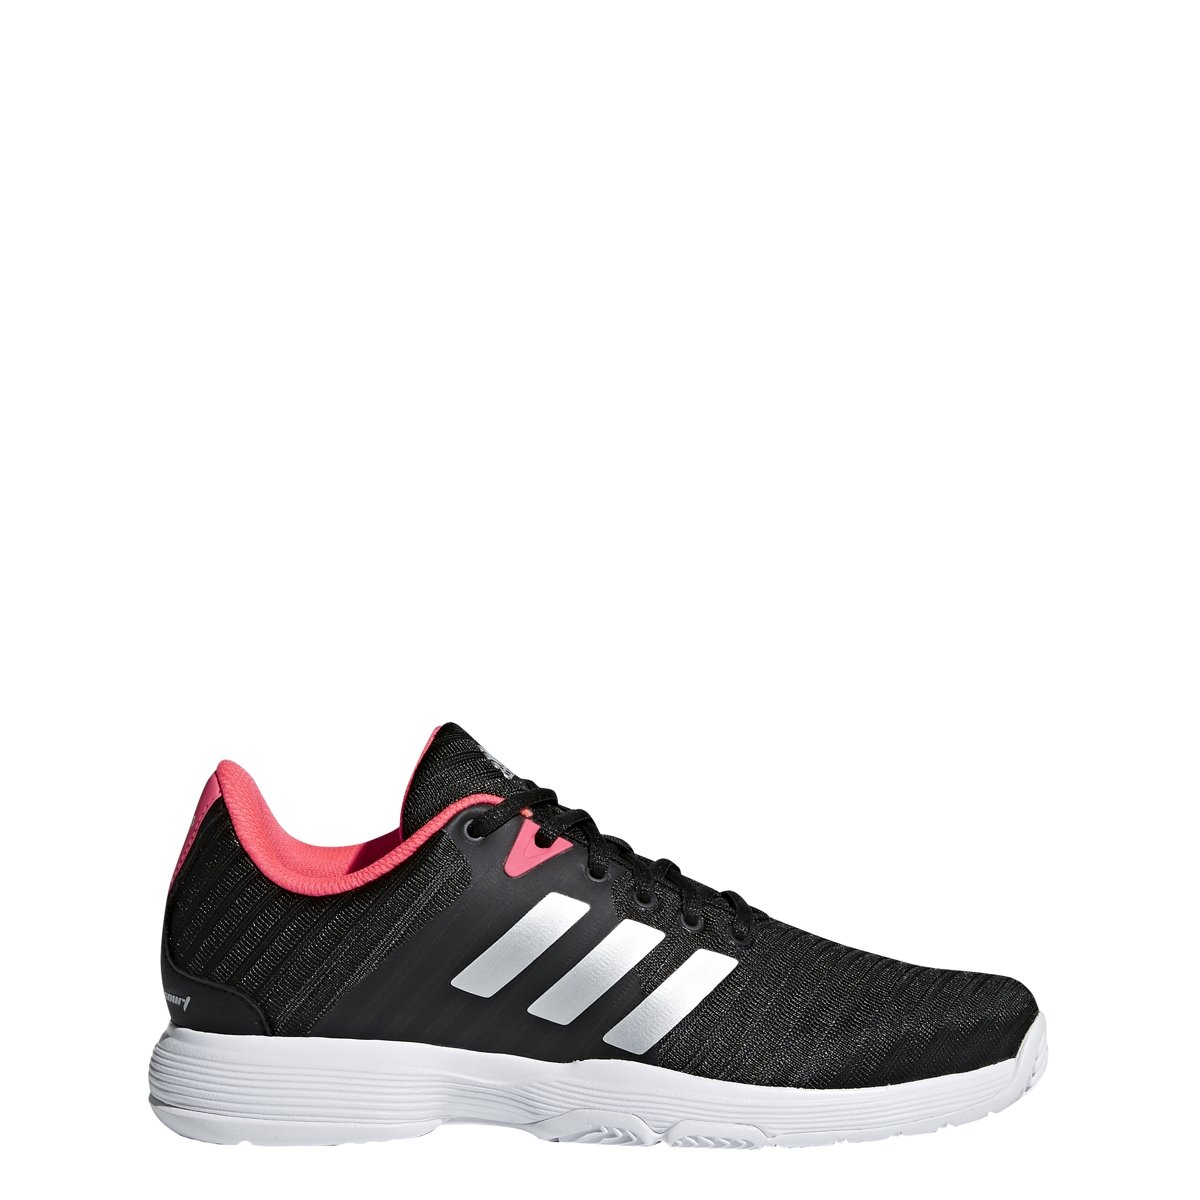 adidas Women's Barricade Court Tennis Shoe, Black/Matte Silver/Flash Red, 7 M US